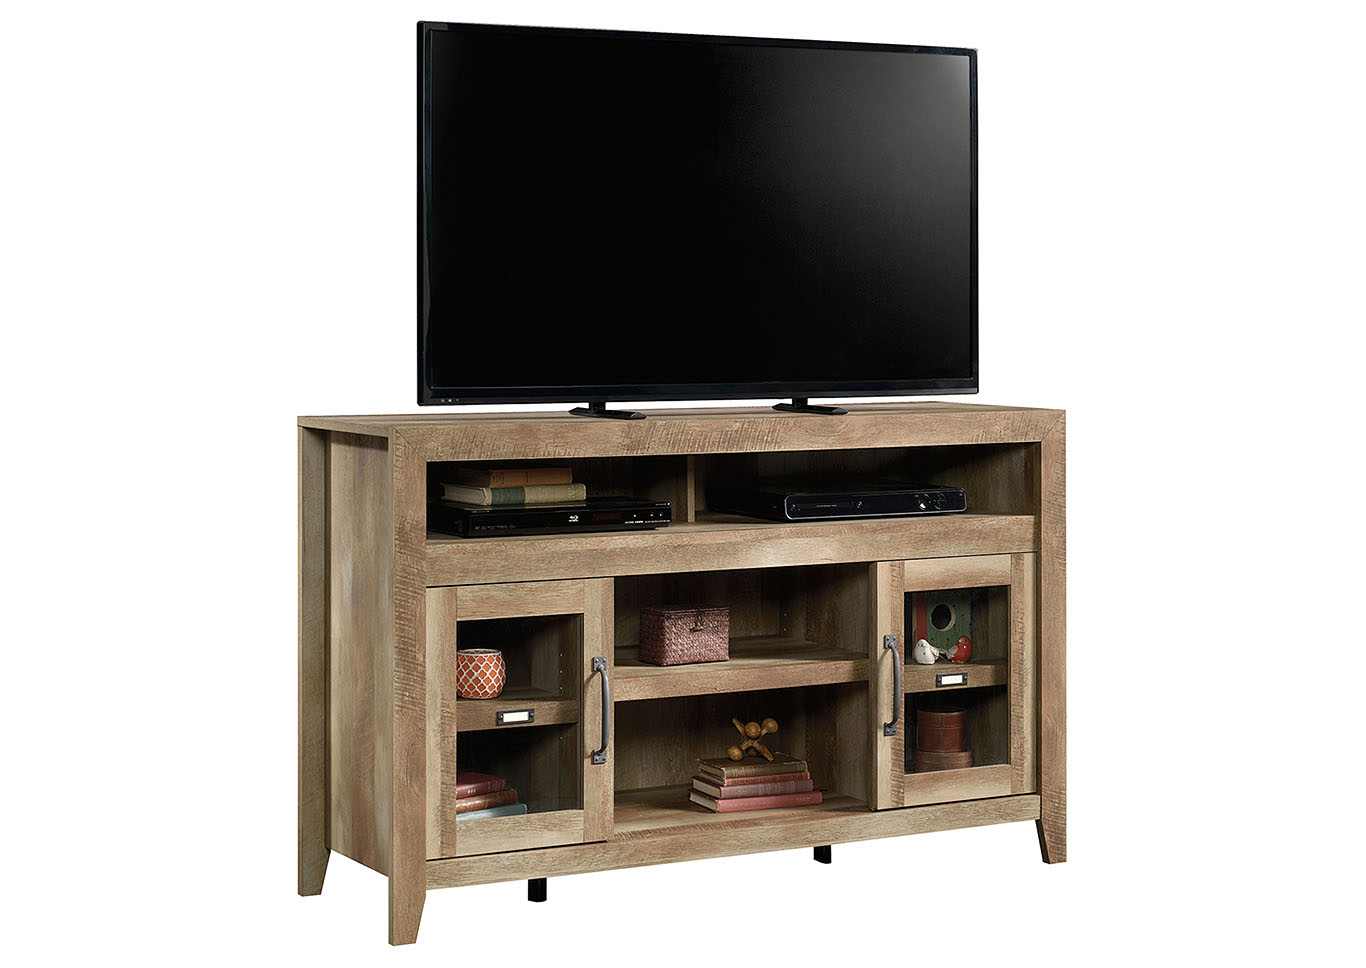 Dakota Pass Craftsman Oak Entertainment Credenza w/Fireplace,Sauder